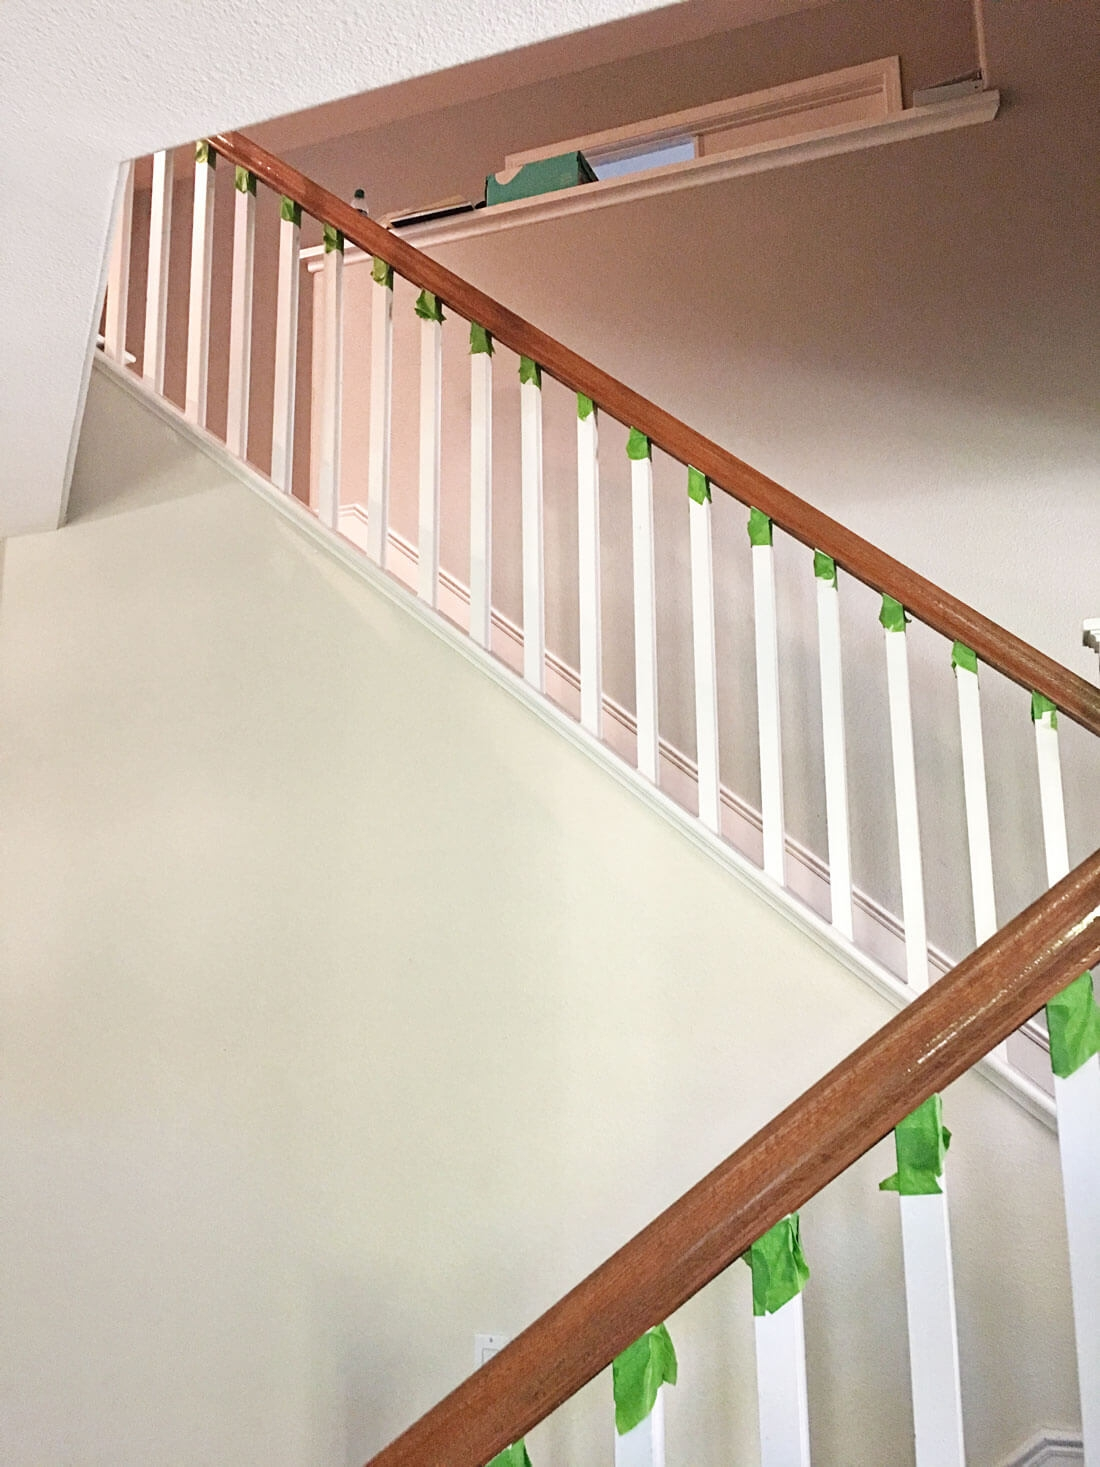 How To Paint Your Stair Railing And Banister Black From 30Daysblog | Wood Railings For Steps | Deck | Stairwell | Nautical Rope | Outdoor | Easy